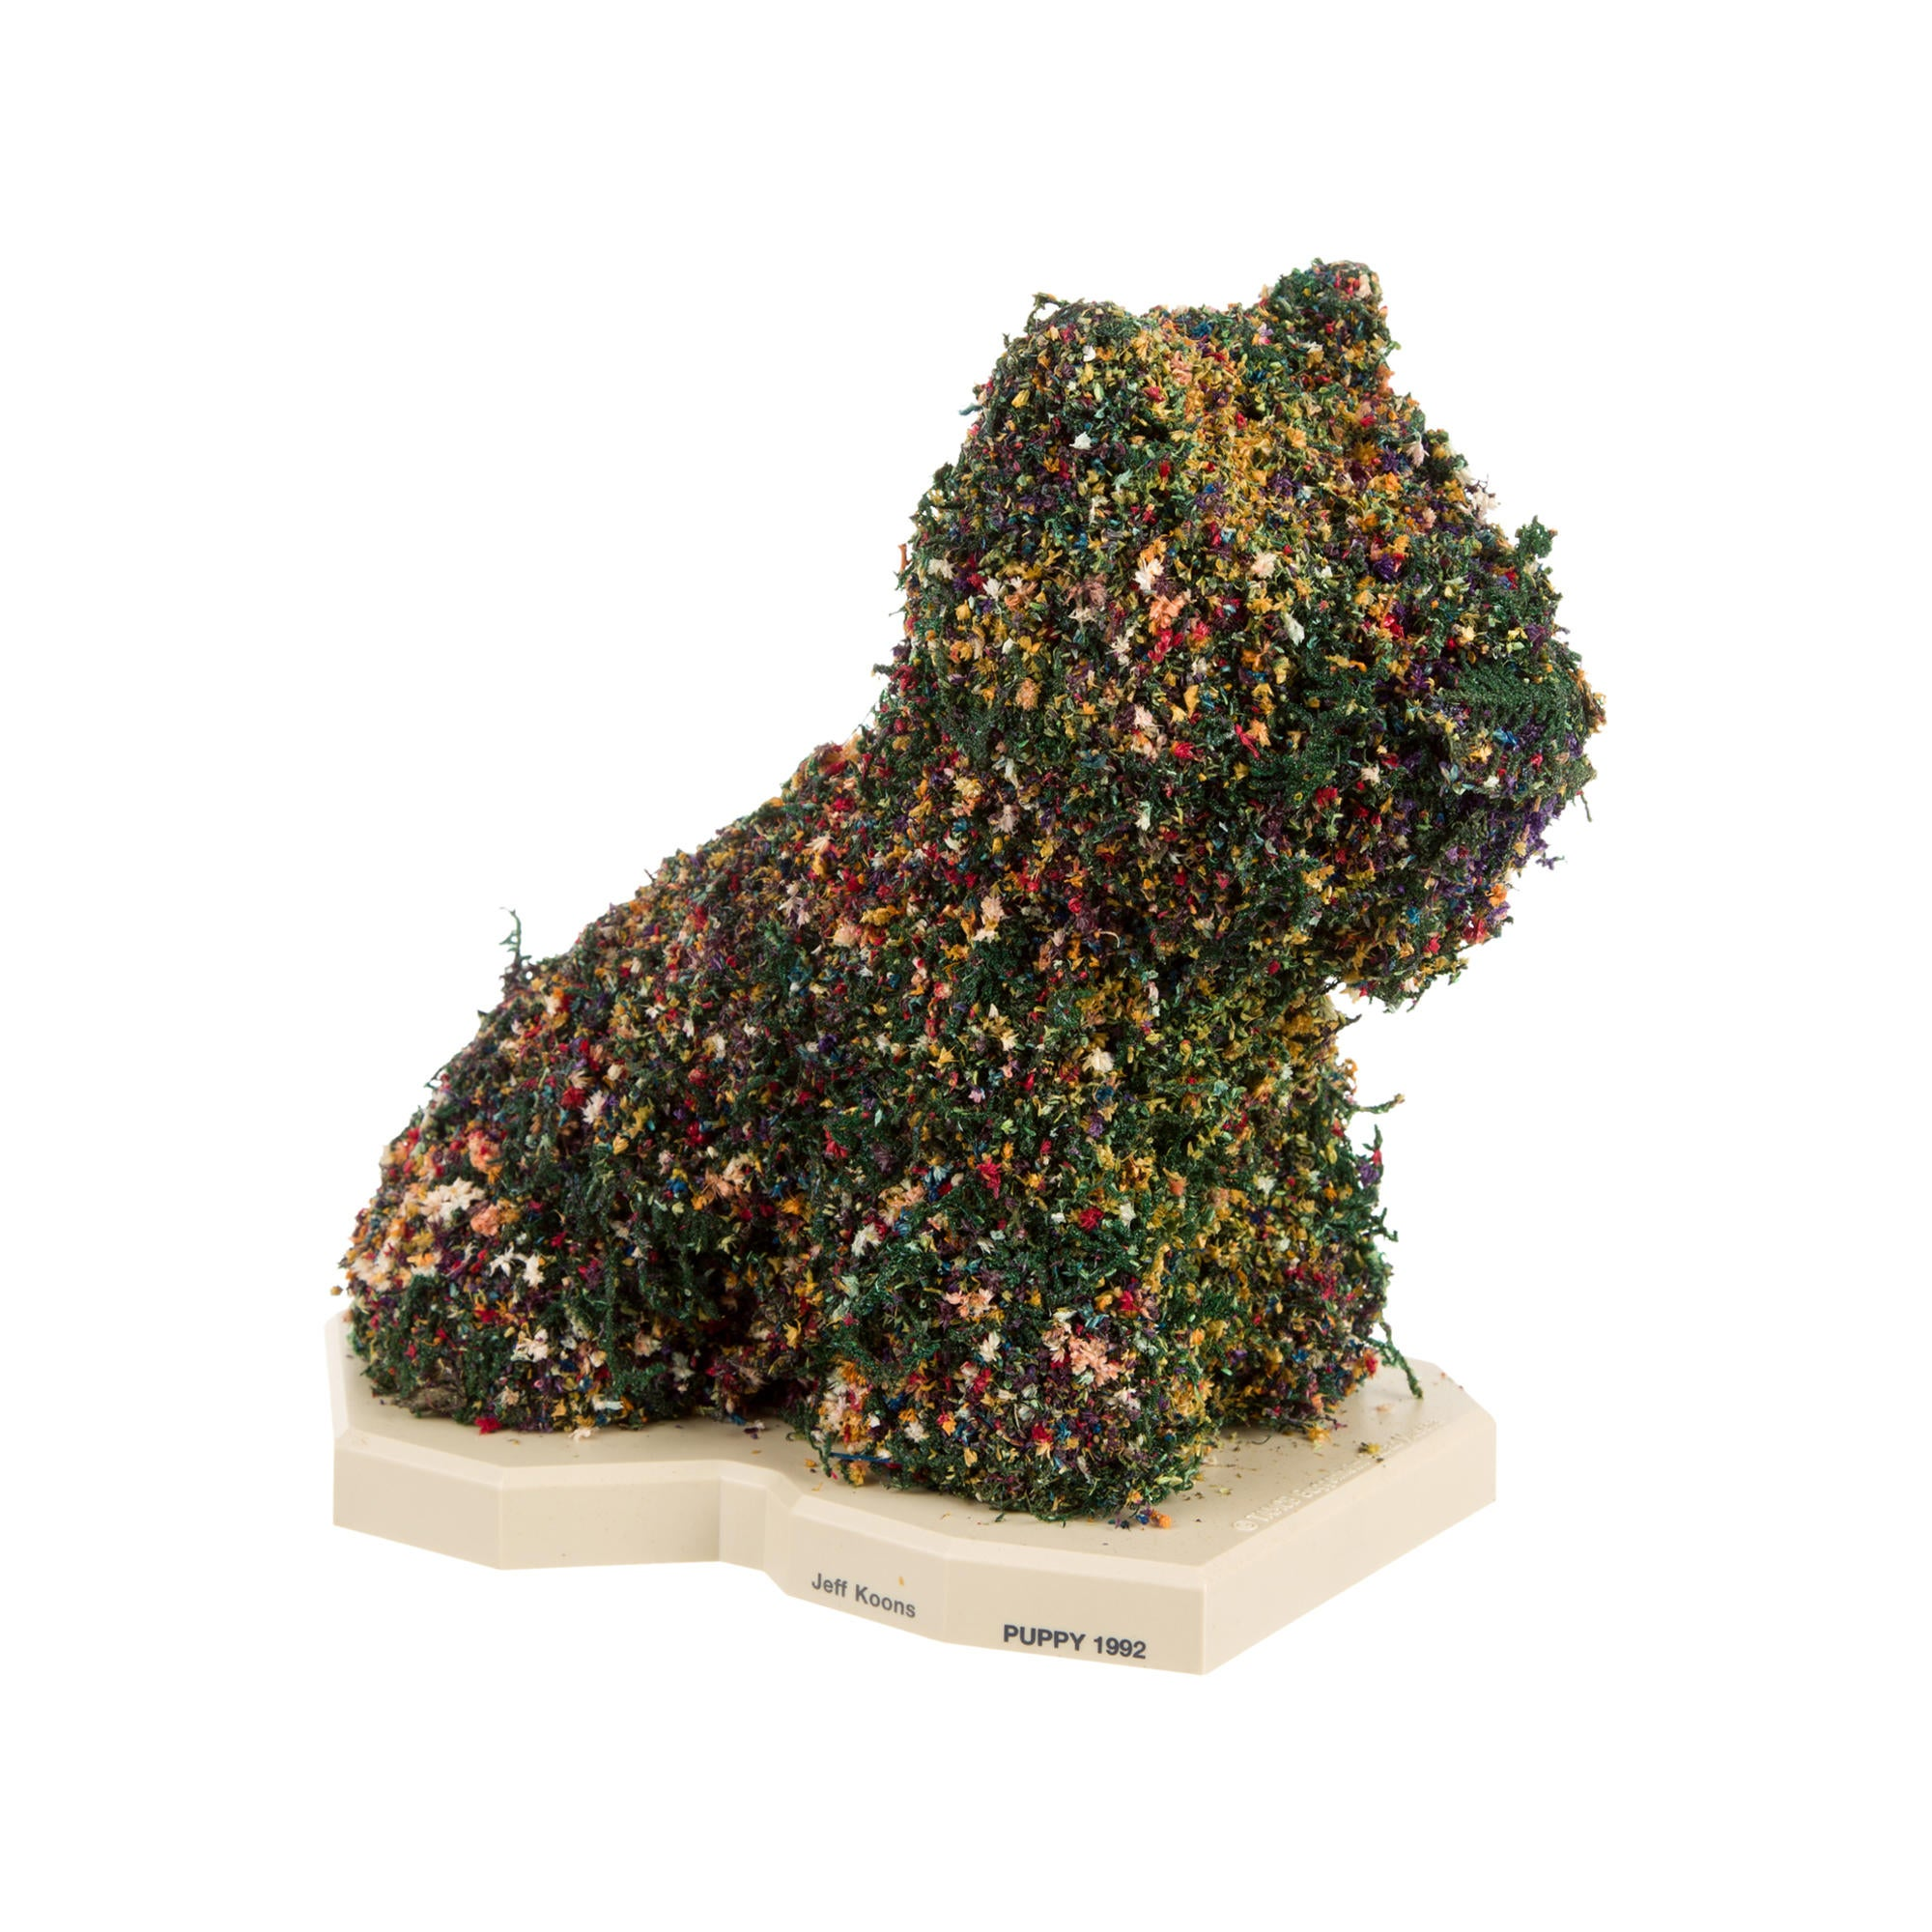 Topiary Puppy